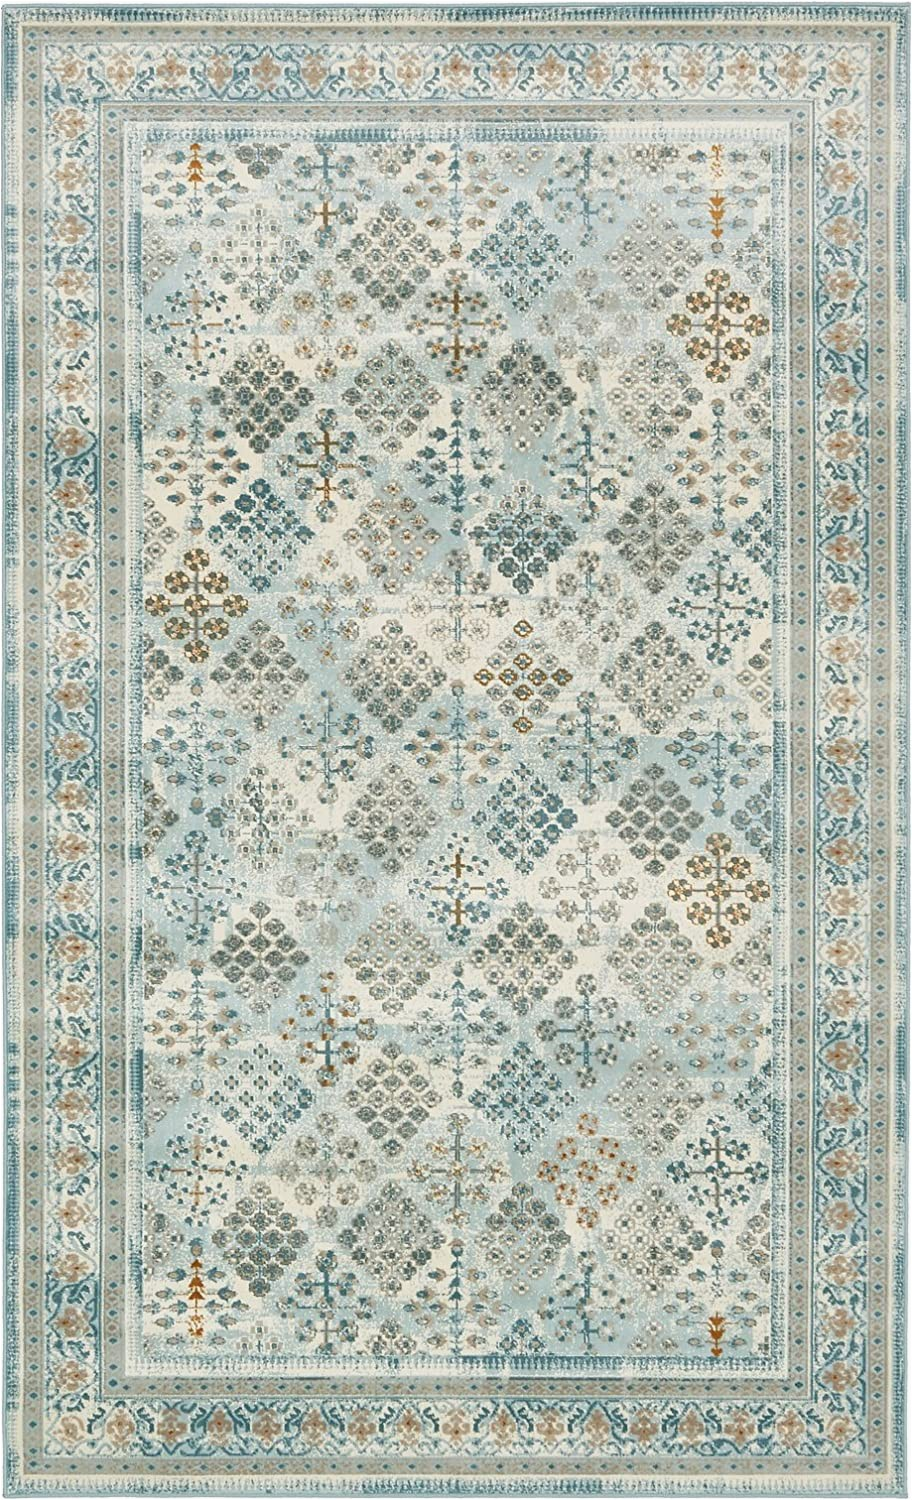 8 Foot Square area Rug area Rug Vintage Light Blue 5 X 8 Ft St John Collection Rugs Inspired Overdyed Carpet